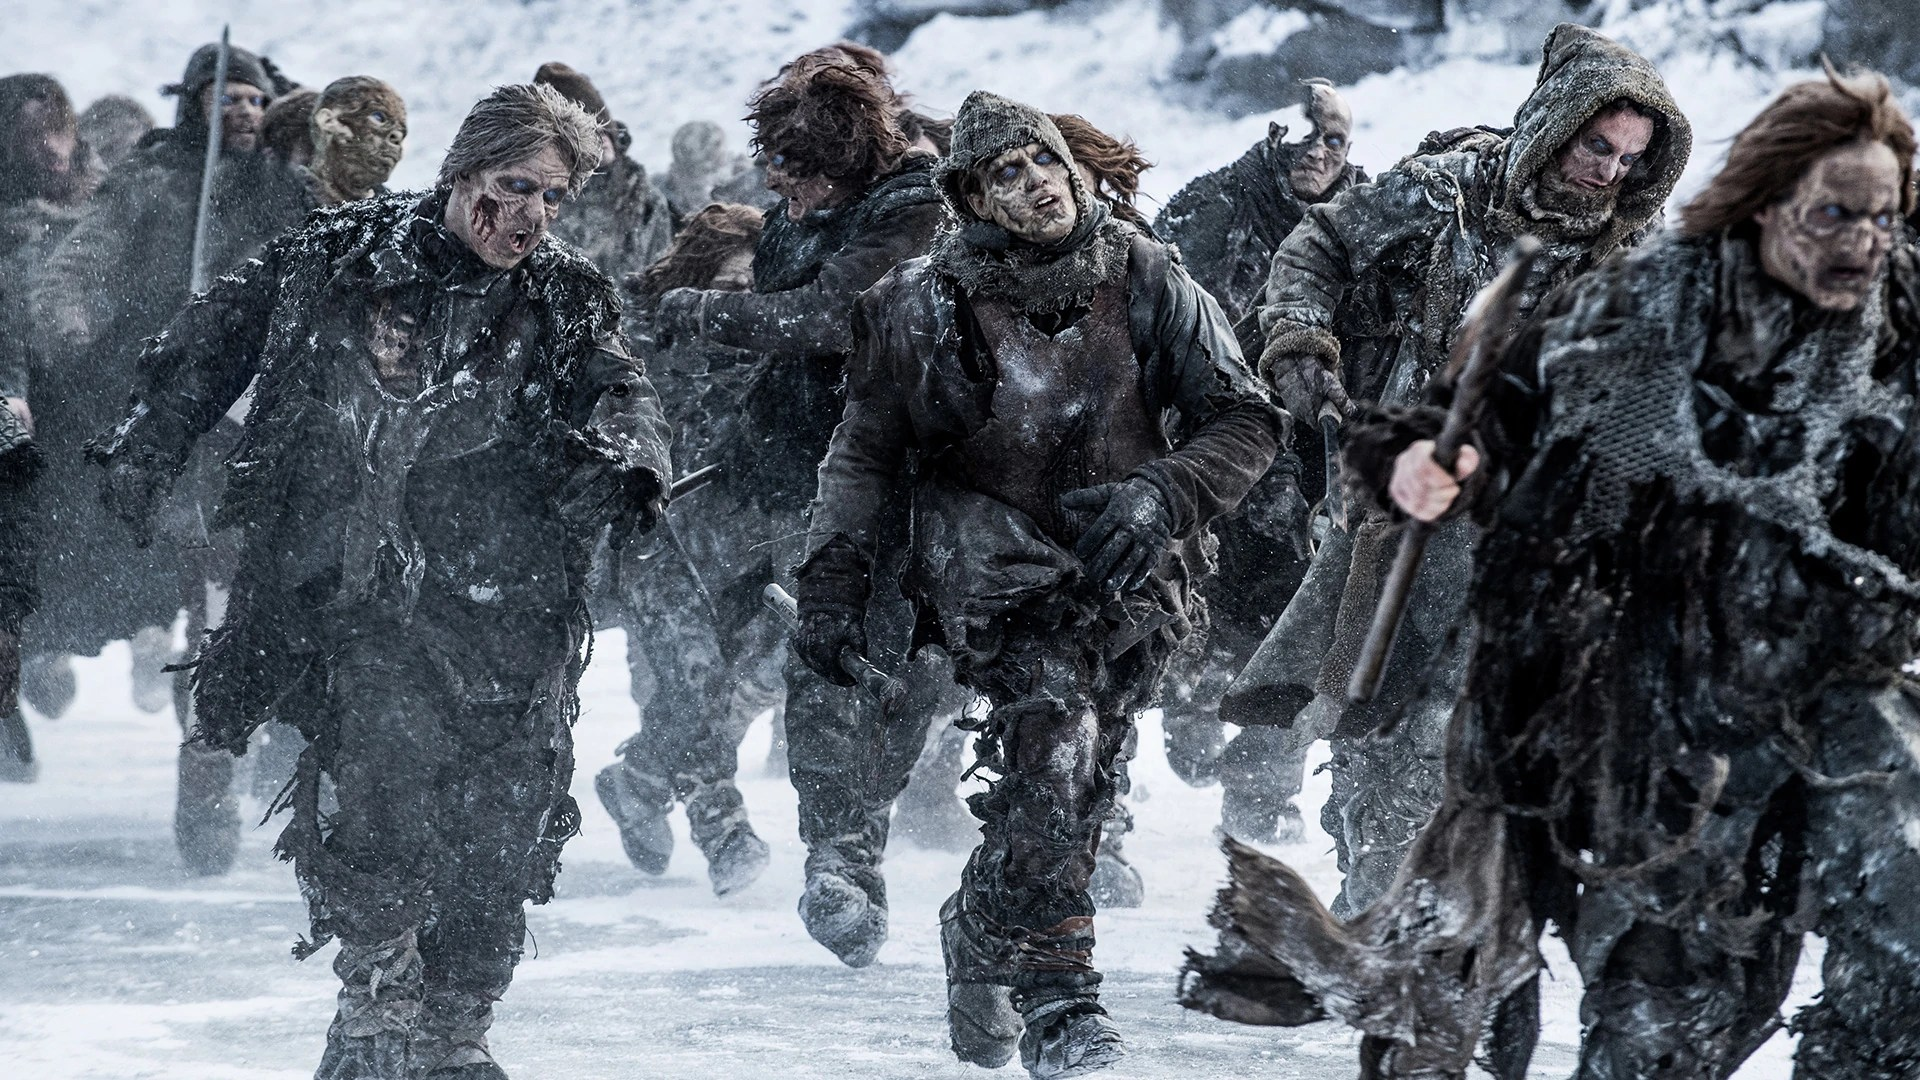 Image 706 Army Of The Dead Beyond The Wall Jpg Game Of